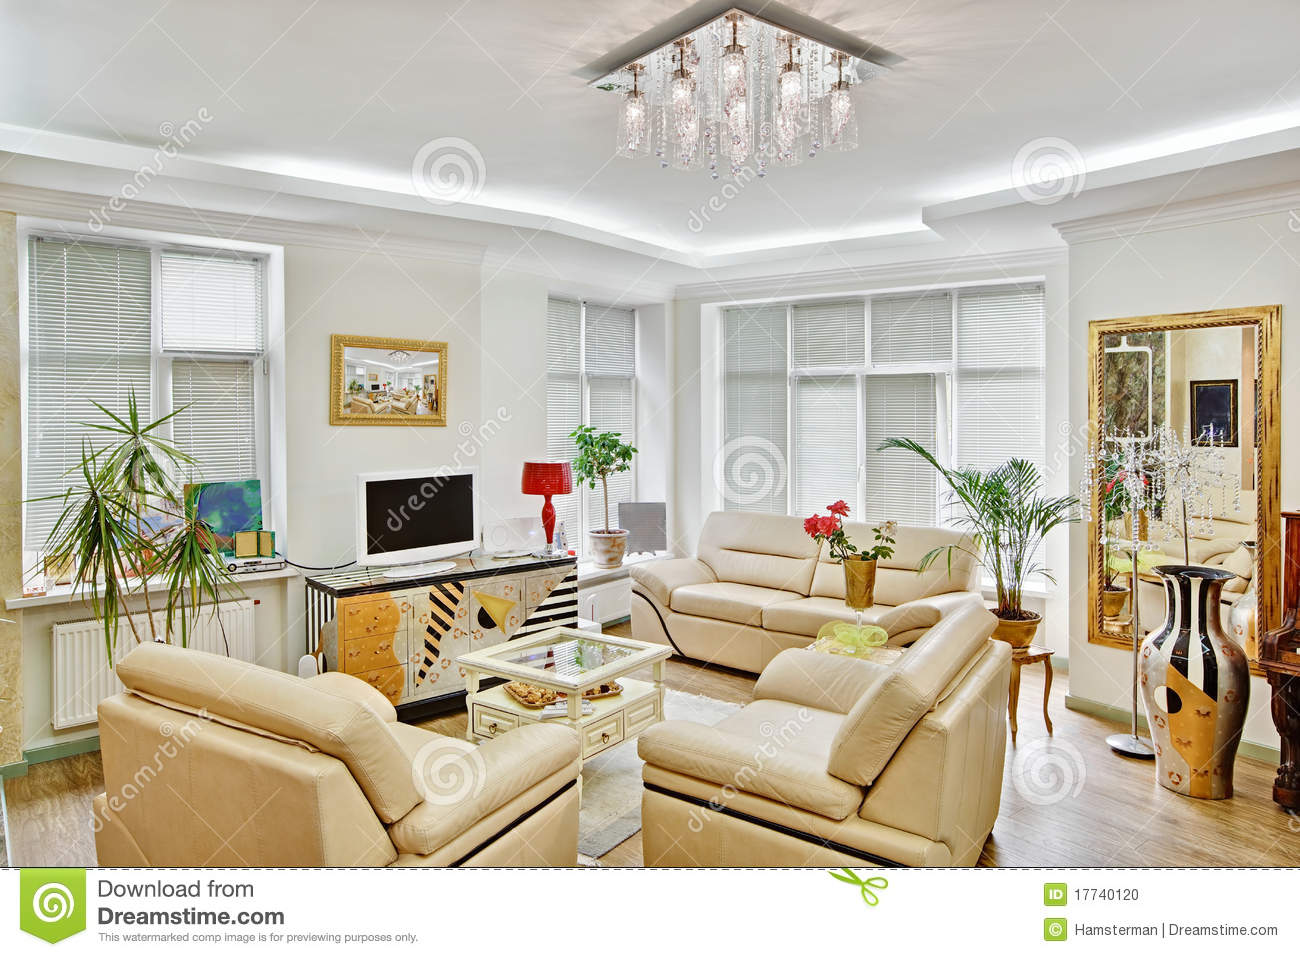 Modern art deco style drawing room interior stock photo for Drawing room interior design photos